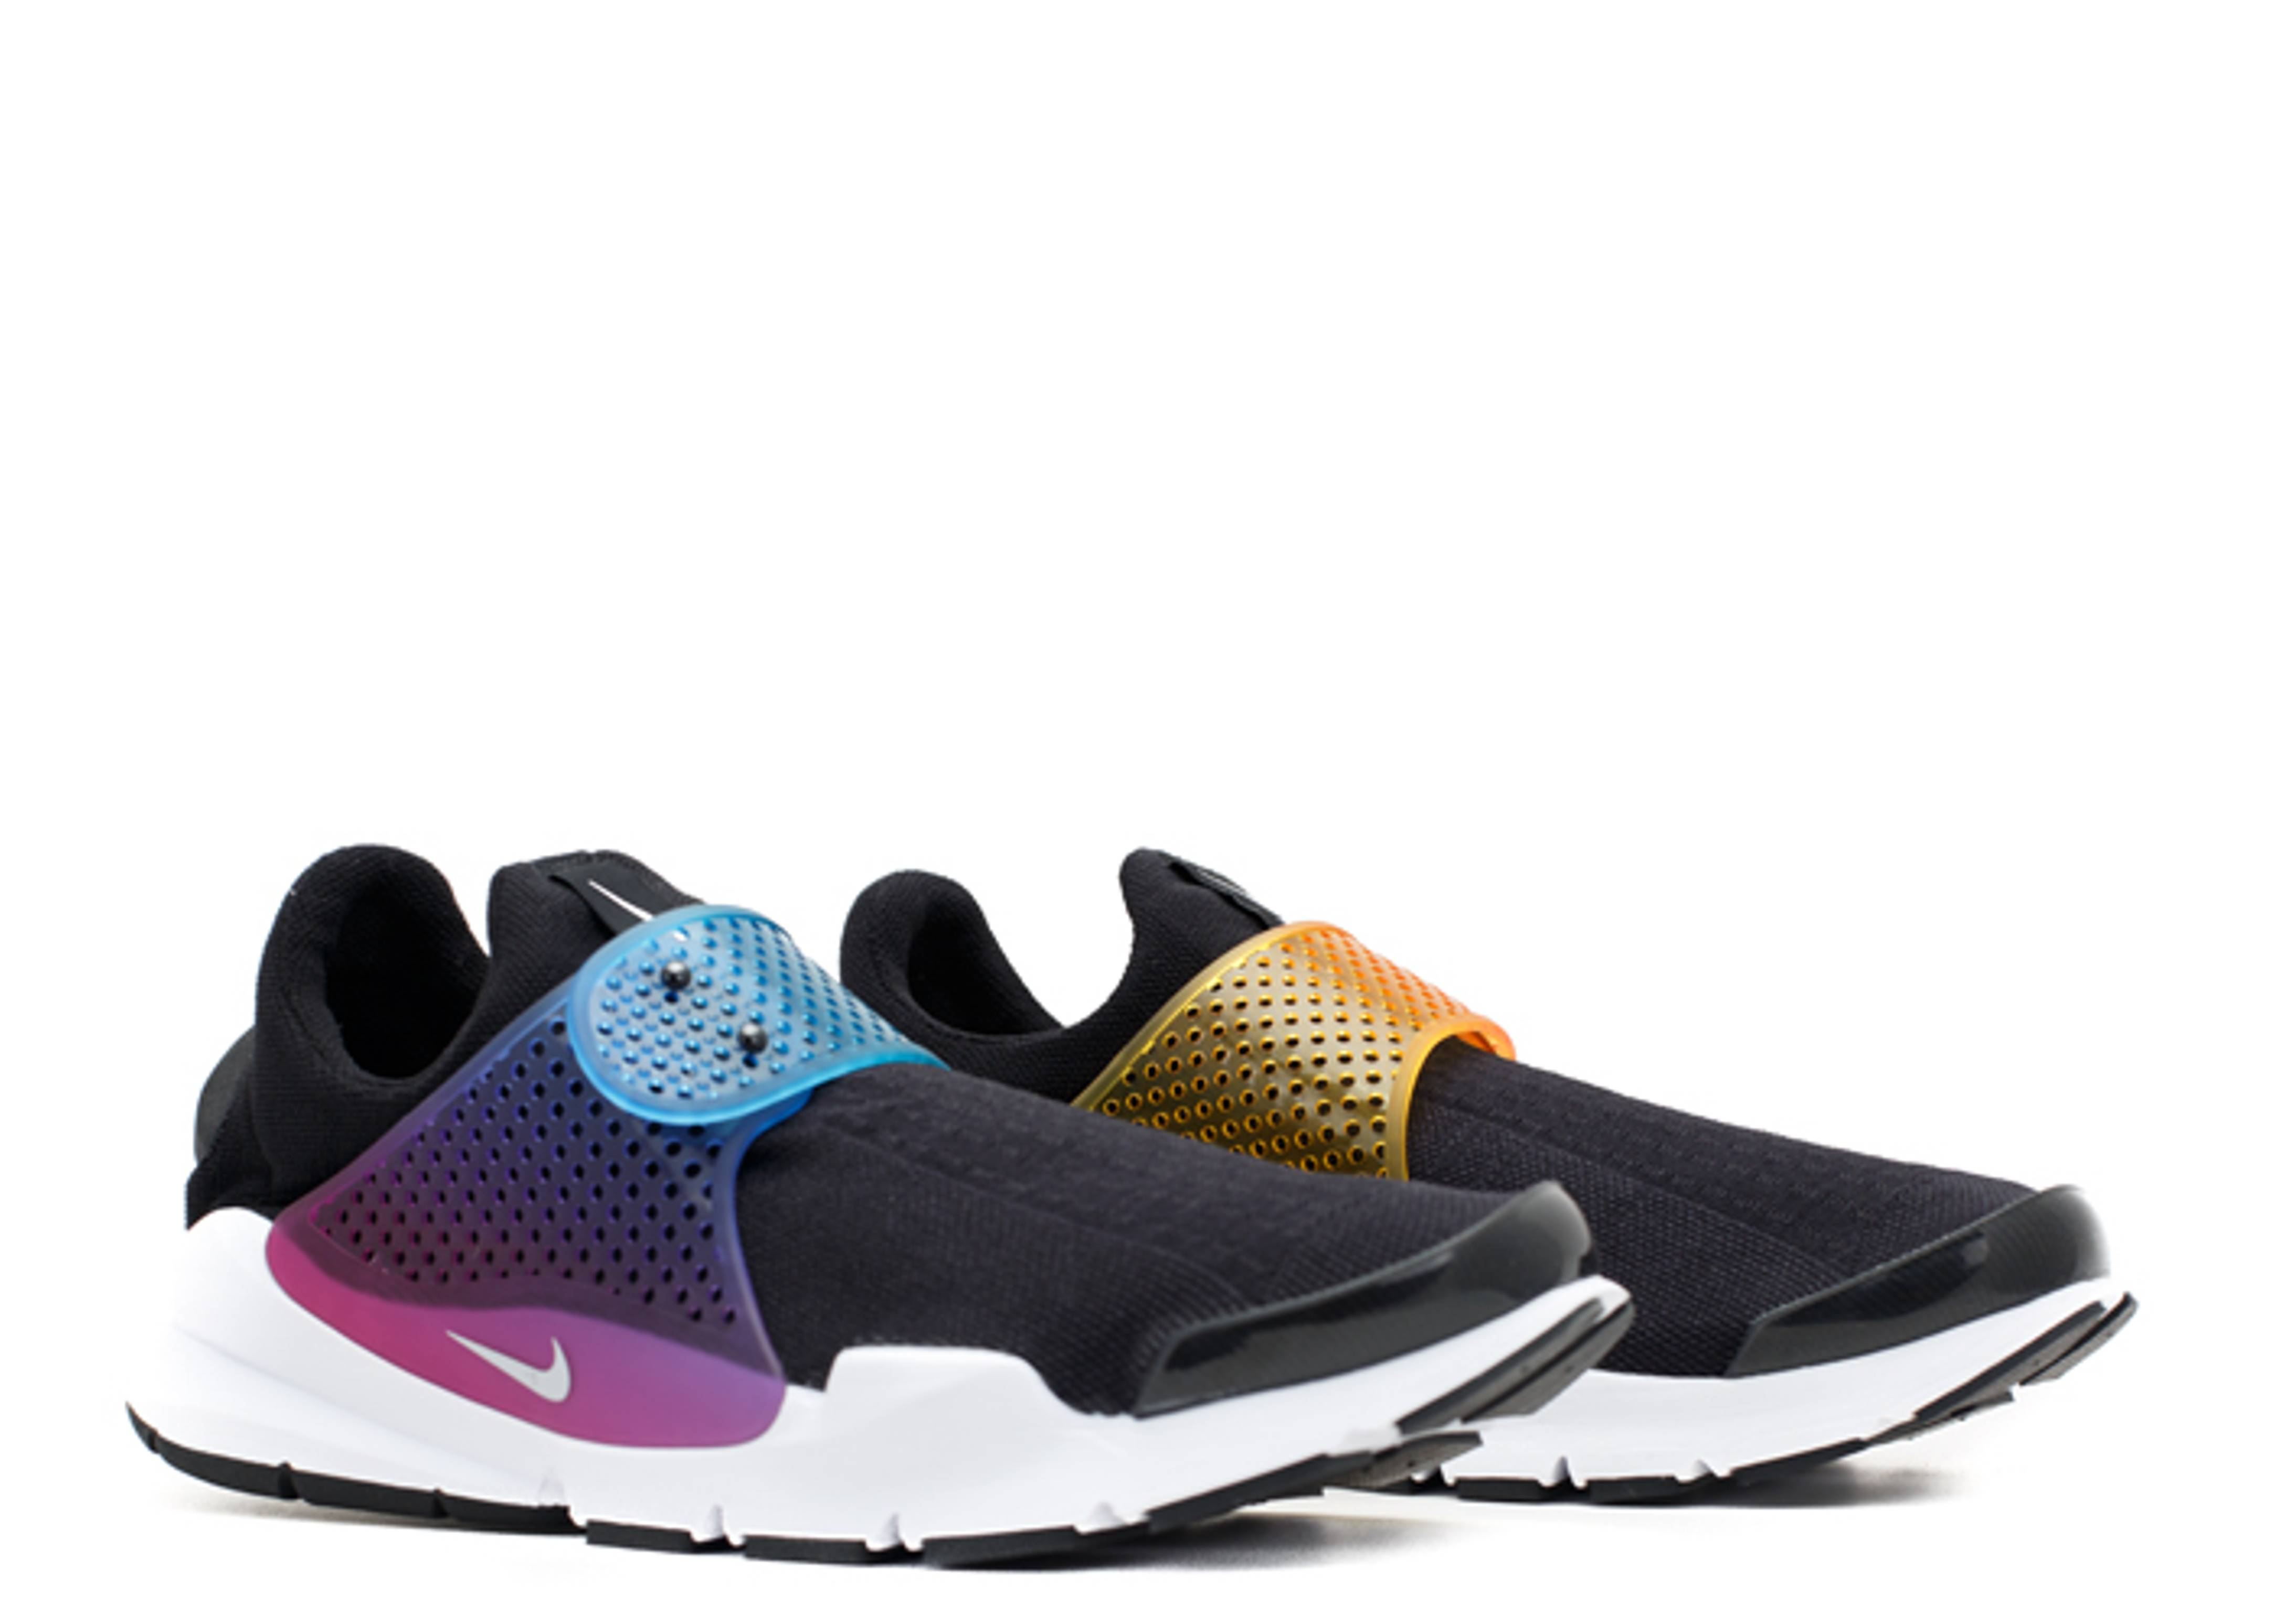 c0369f3a8aa24 Nike Sock Dart Independence Day Red Trainer Size 12 UK ...